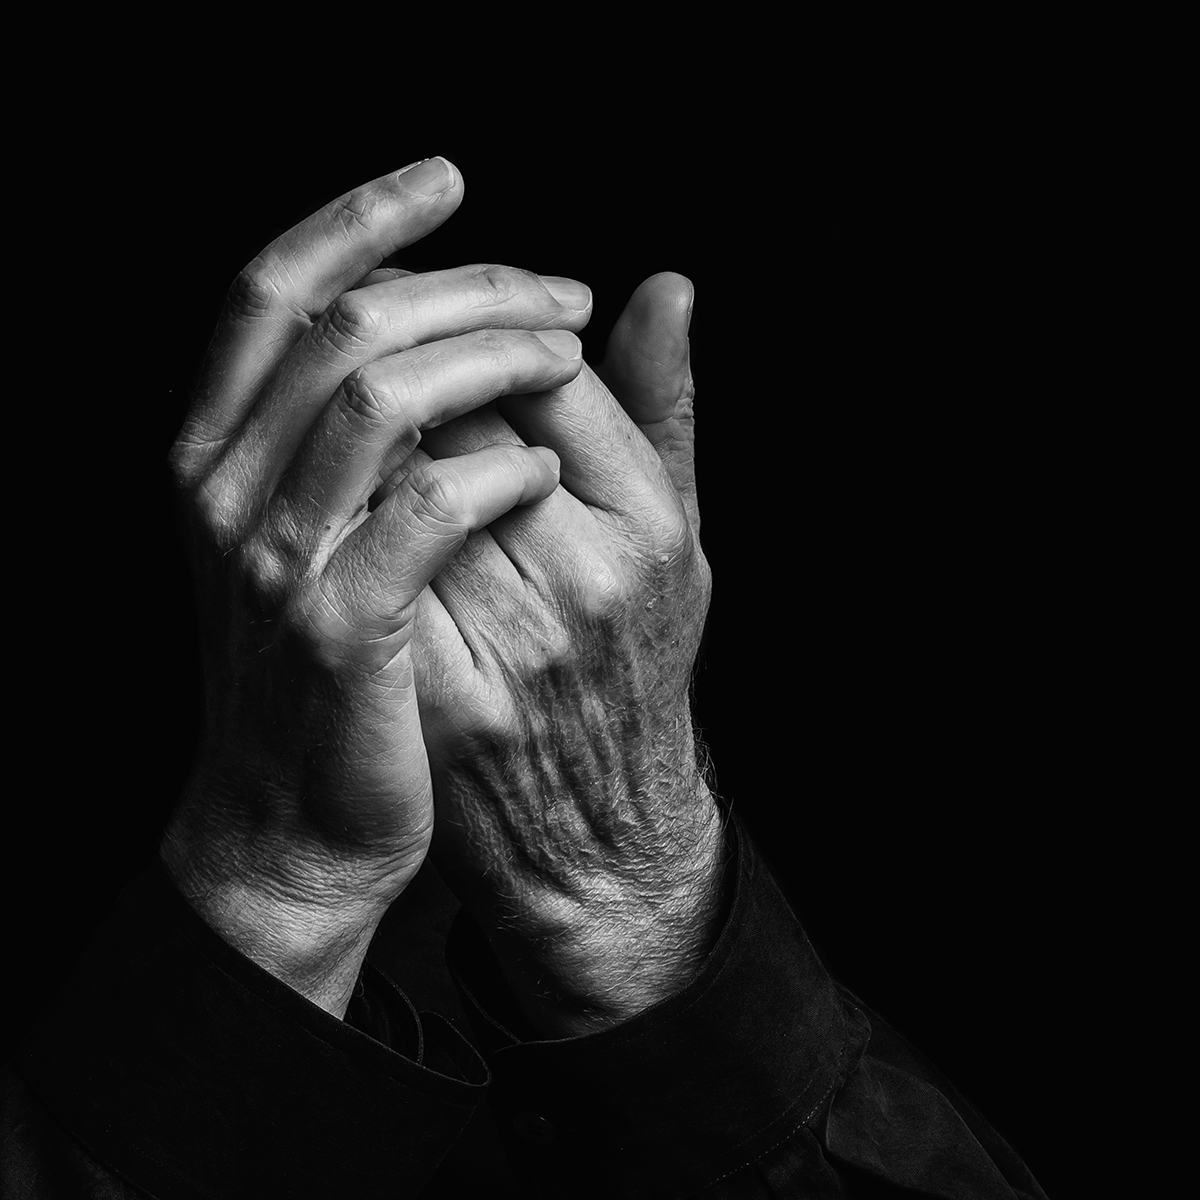 Hands of violinist Gidon Kremer in Vilnius